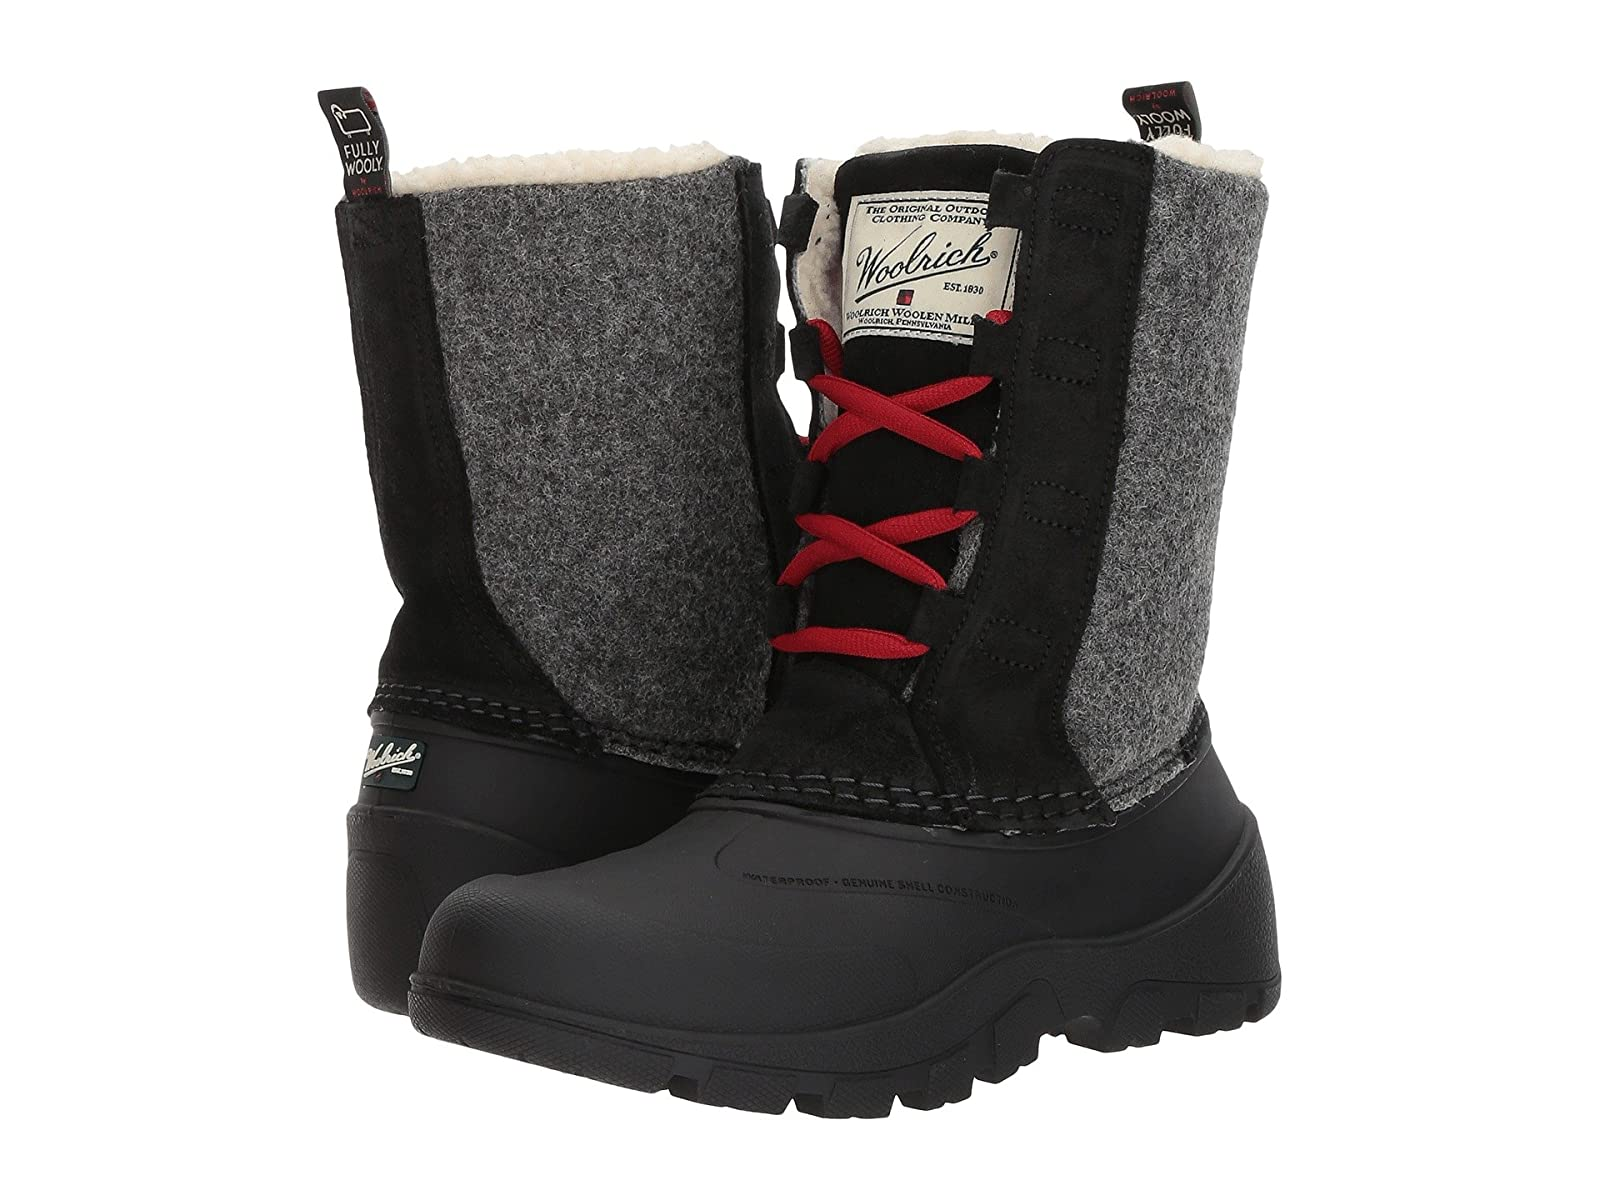 Woolrich Fully Wooly TundracatCheap and distinctive eye-catching shoes